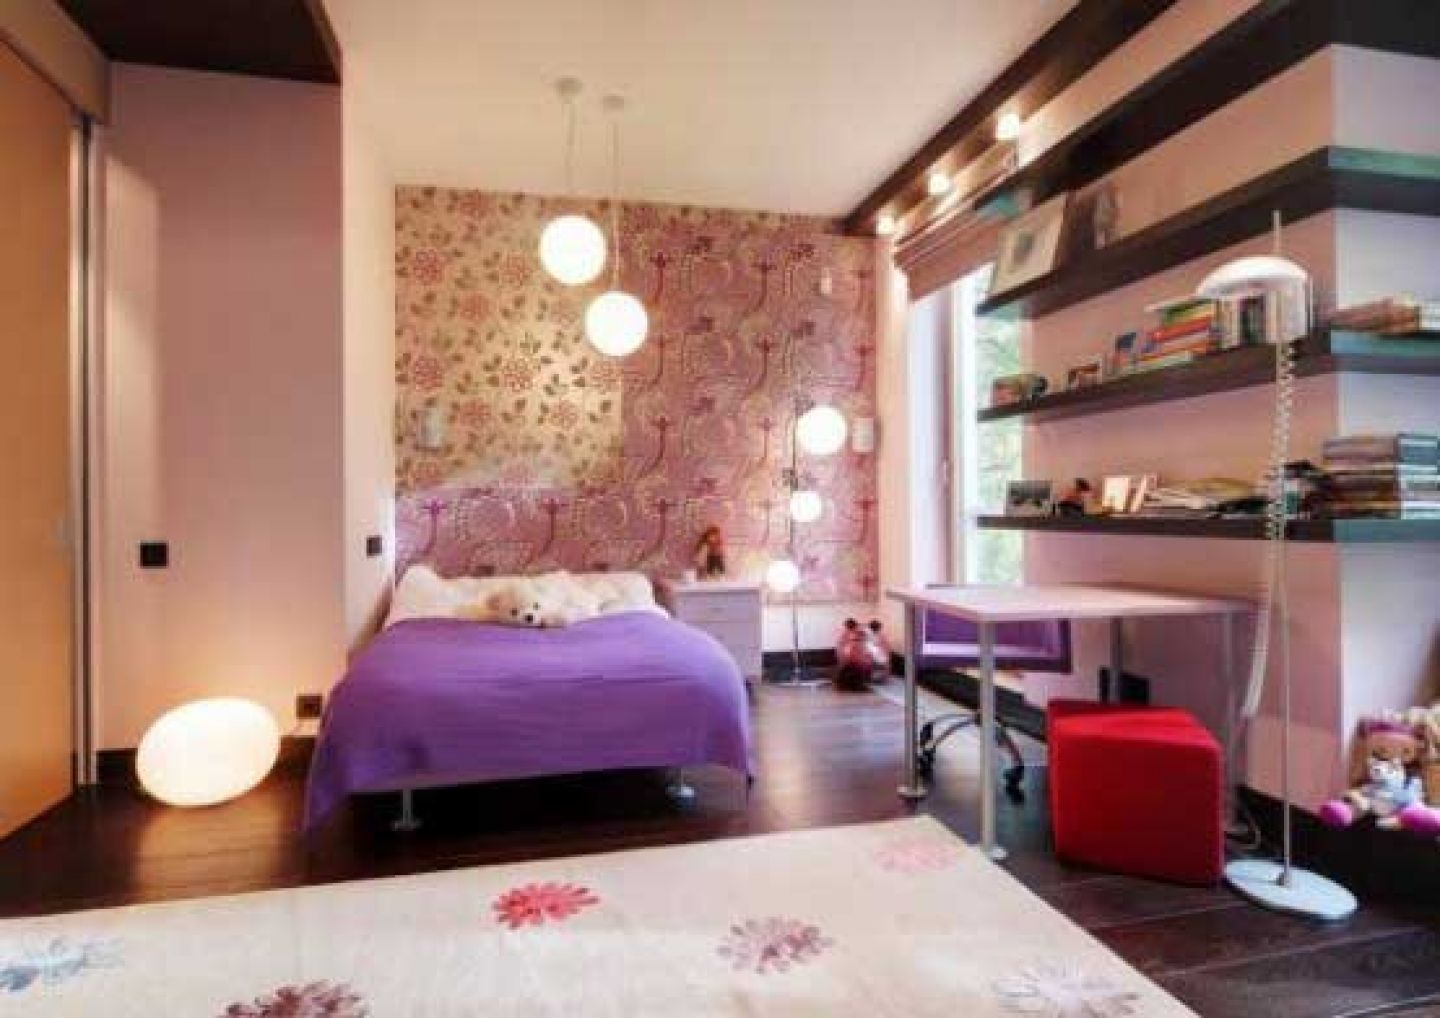 interior ikea women purple bedroom closet 1000 images about teenager bedroom on pinterest teen bedroom bed bedroomenchanting comfortable office chair